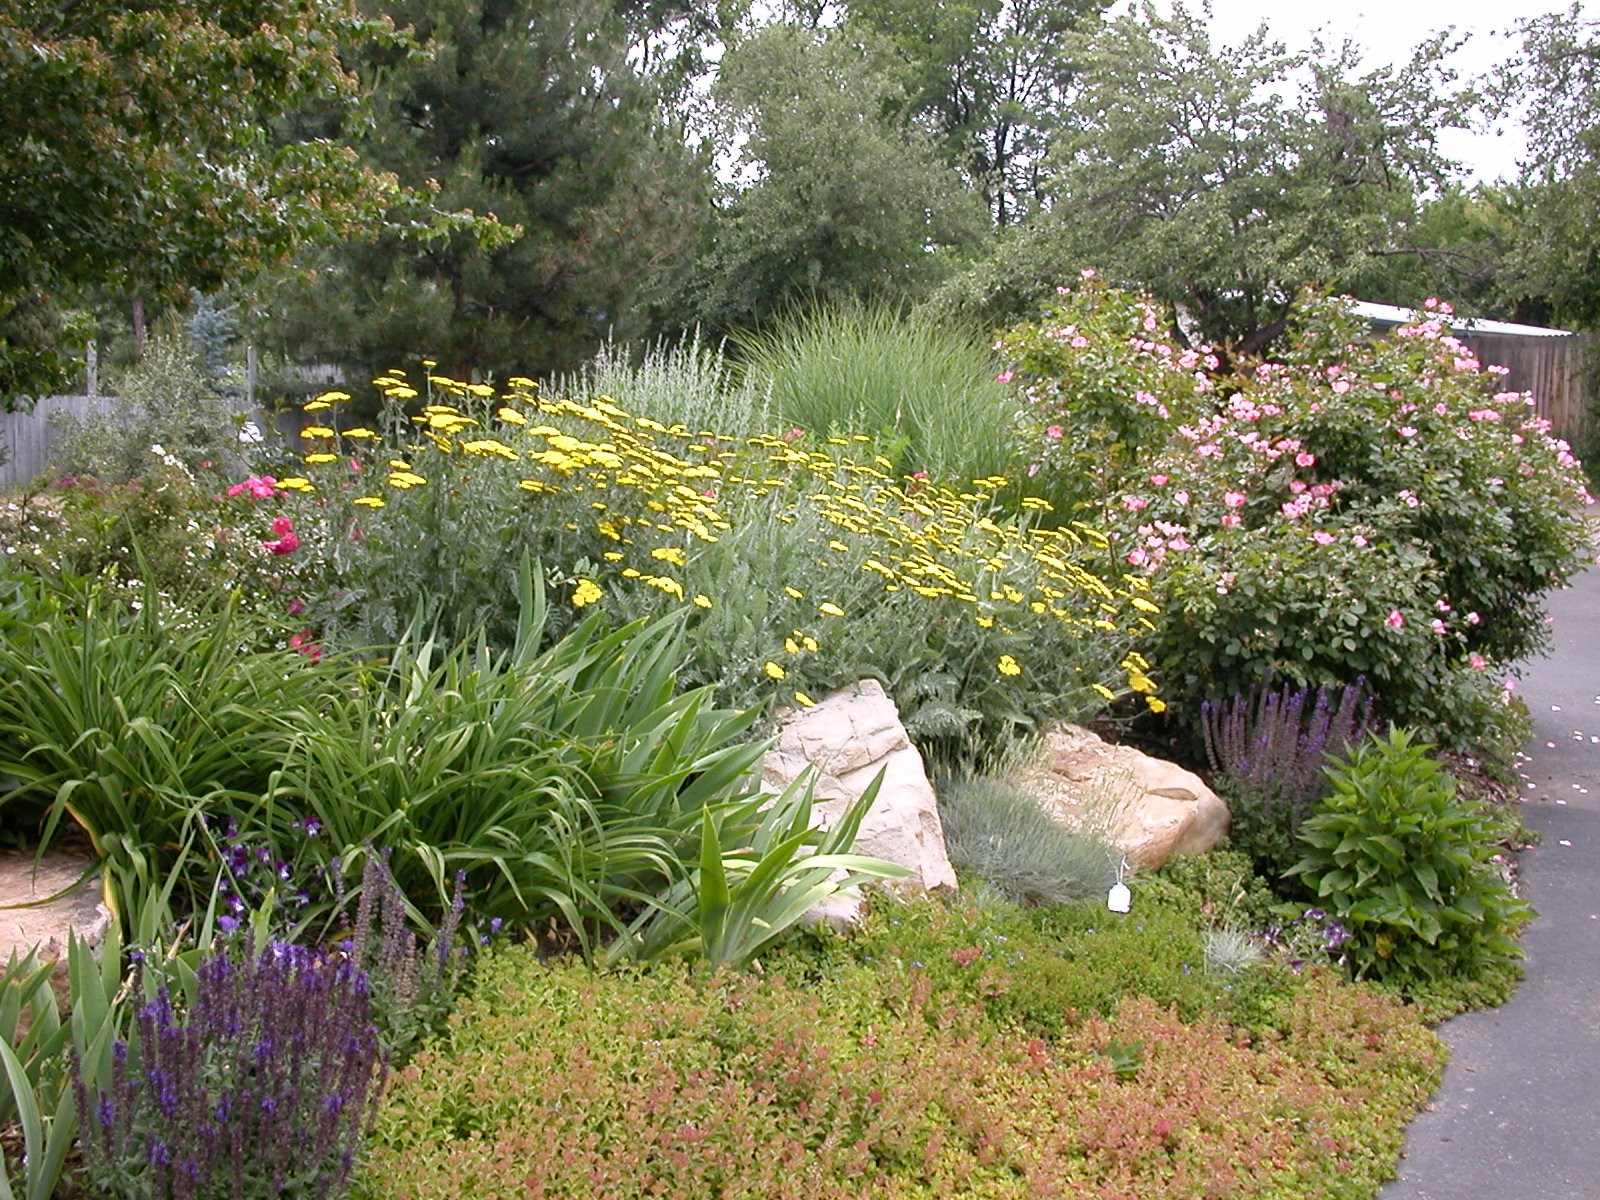 Goss-Grove Neighborhood Blog: Conservation Center Xeriscape Classes